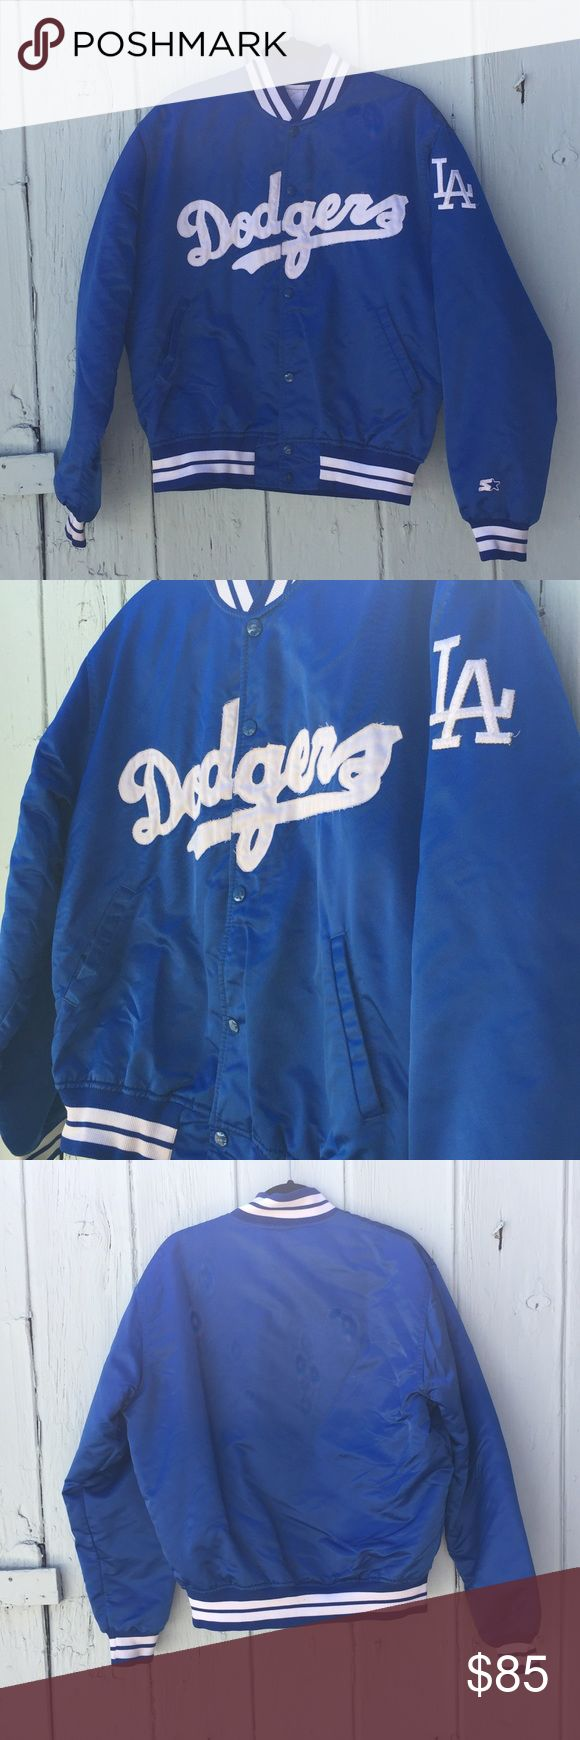 Vintage Dodger Starter Jacket Awesome vintage Dodgers starter jacket! In good vintage condition - complete with snap buttons!  this is an AMAZING find for the true Dodger diehard!! Starter Jackets & Coats